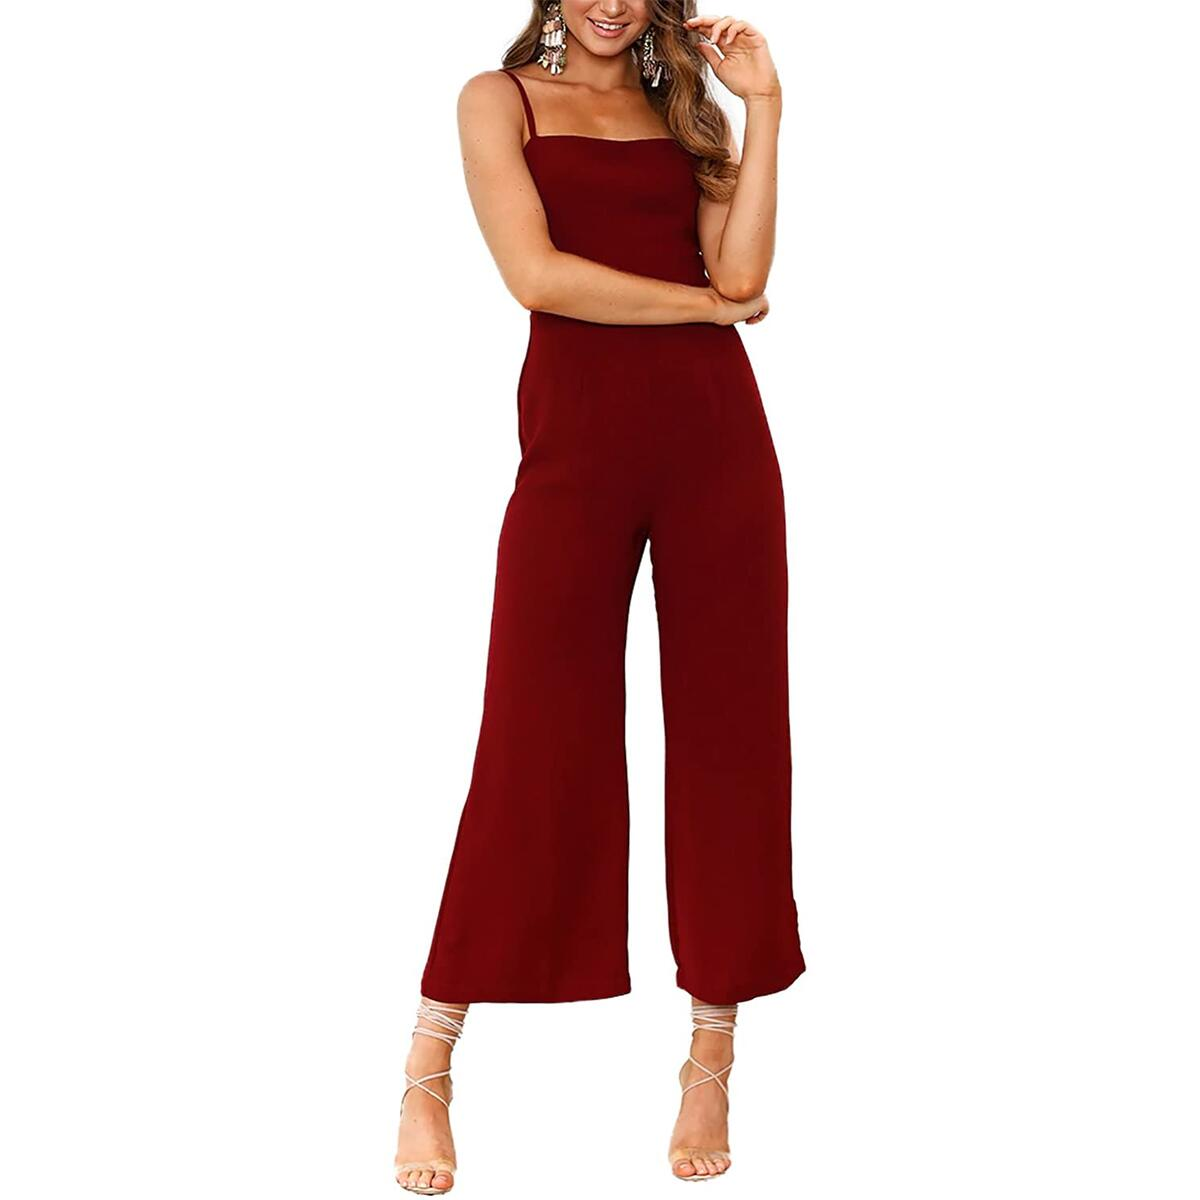 Minipeach Women's Solid Color Backless Sleeveless Wide Long Pants Jumpsuit Rompers